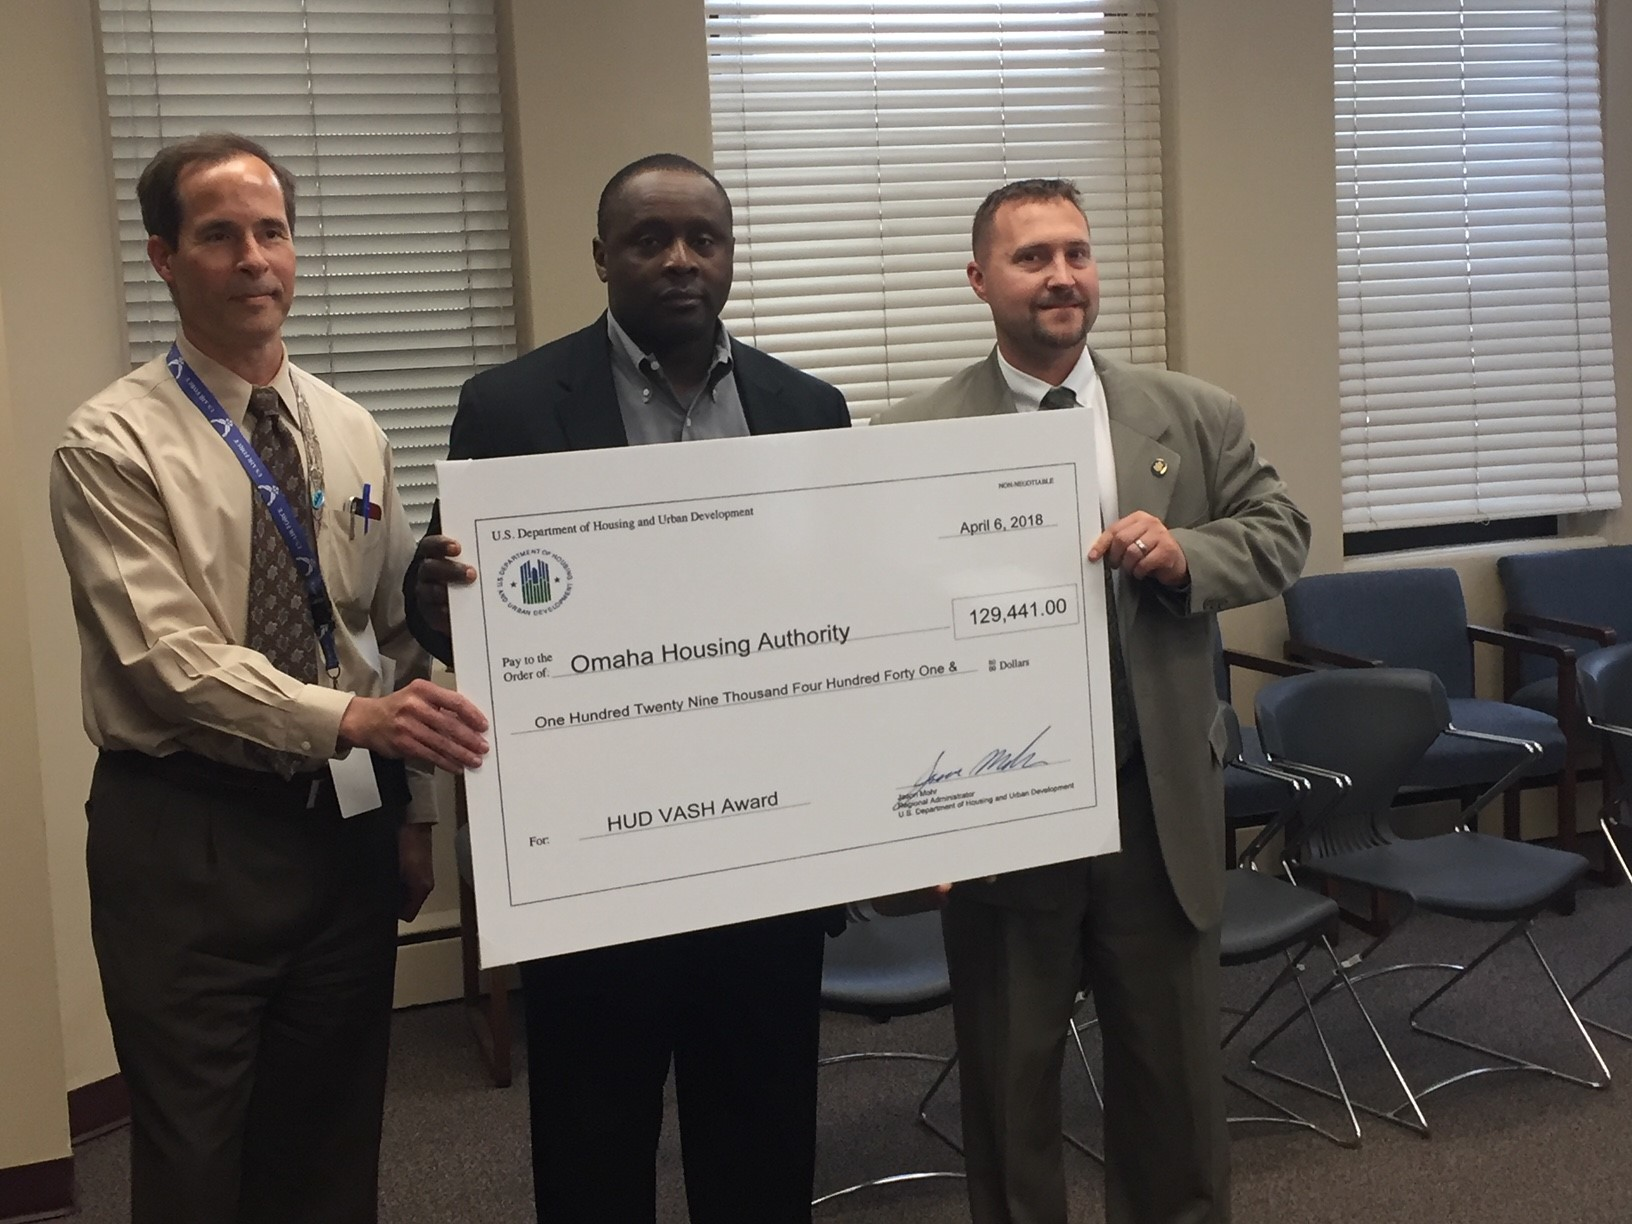 [Jason Mohr Presenting ceremonial check to local officials].